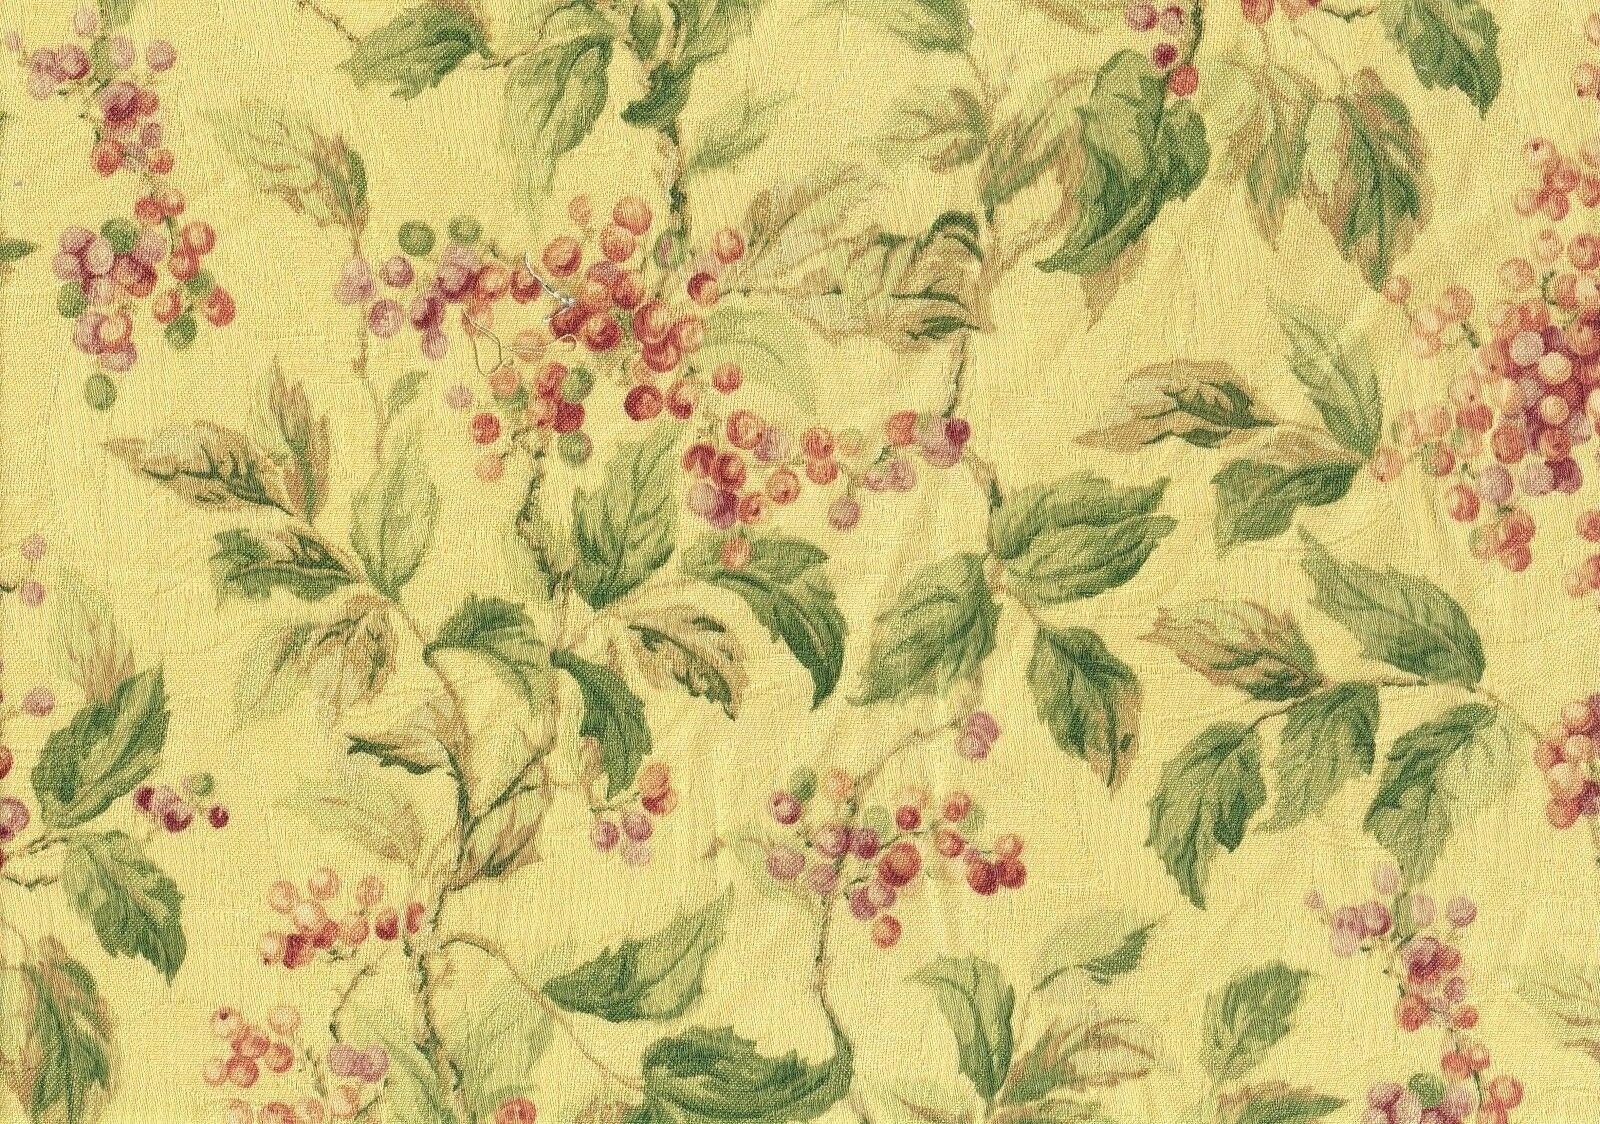 fabric bloomsbury floral drapery upholstery yellow rose